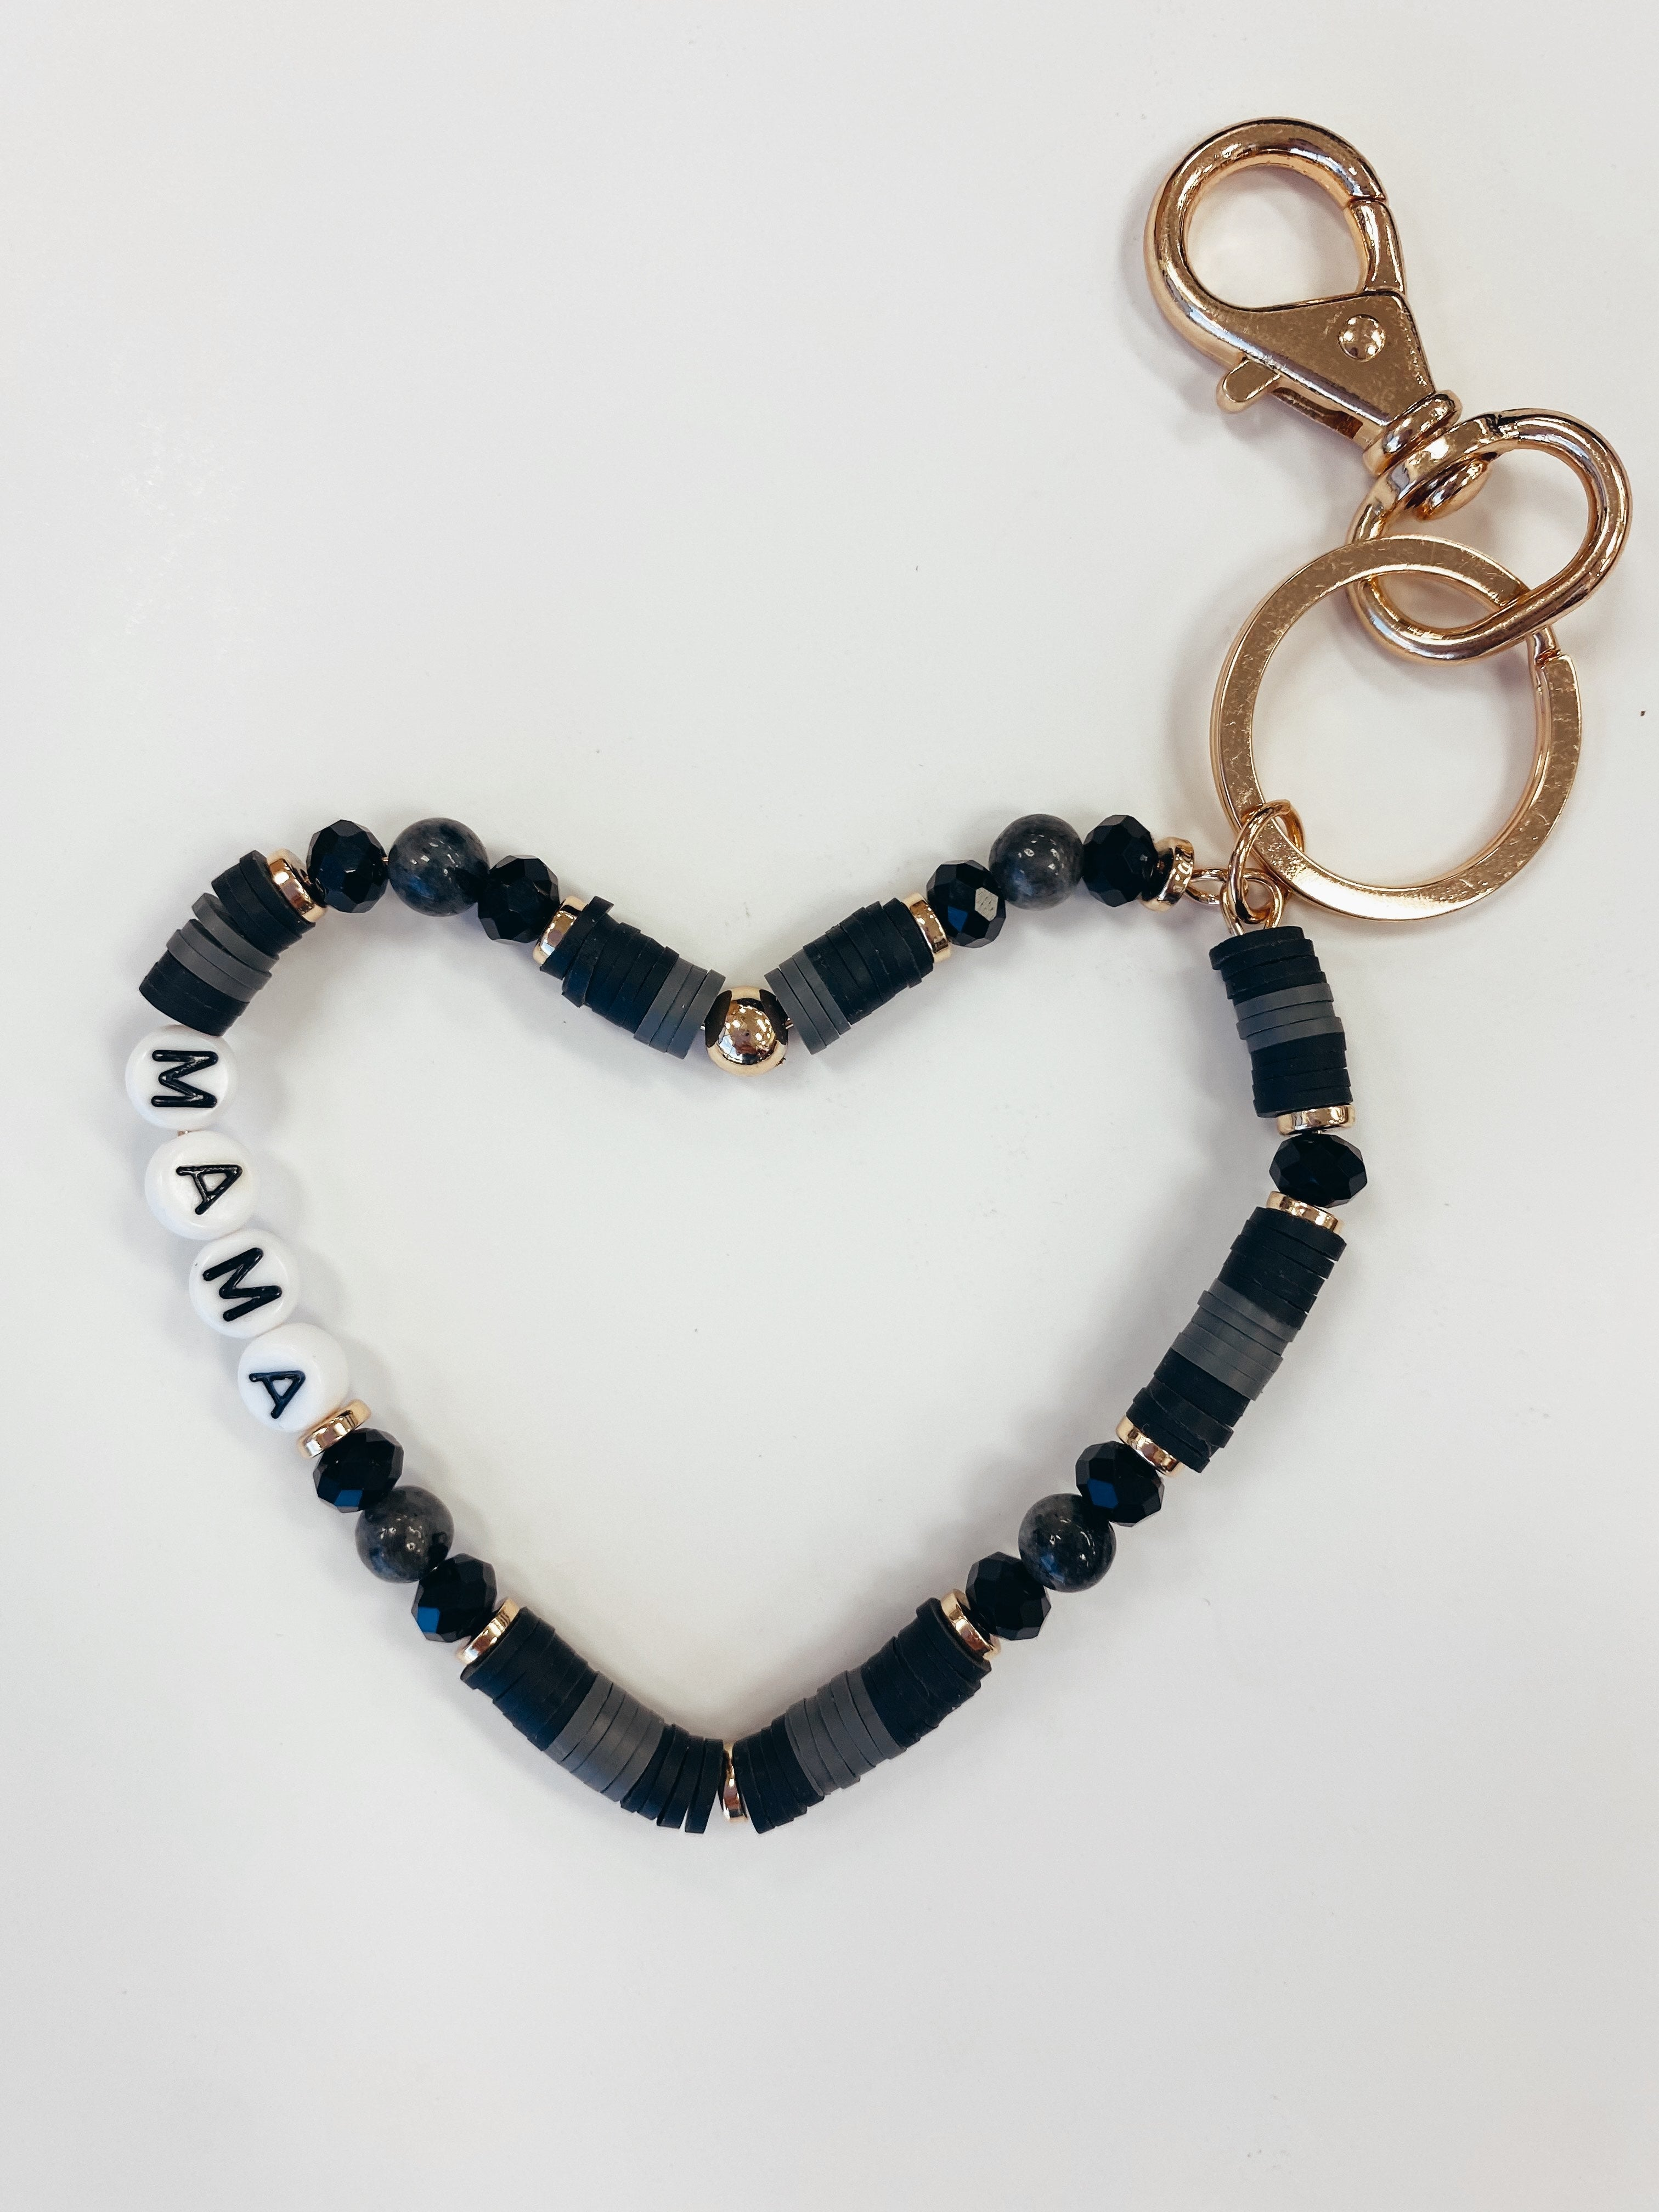 THE MAMA HEART SHAPE KEY CHAIN